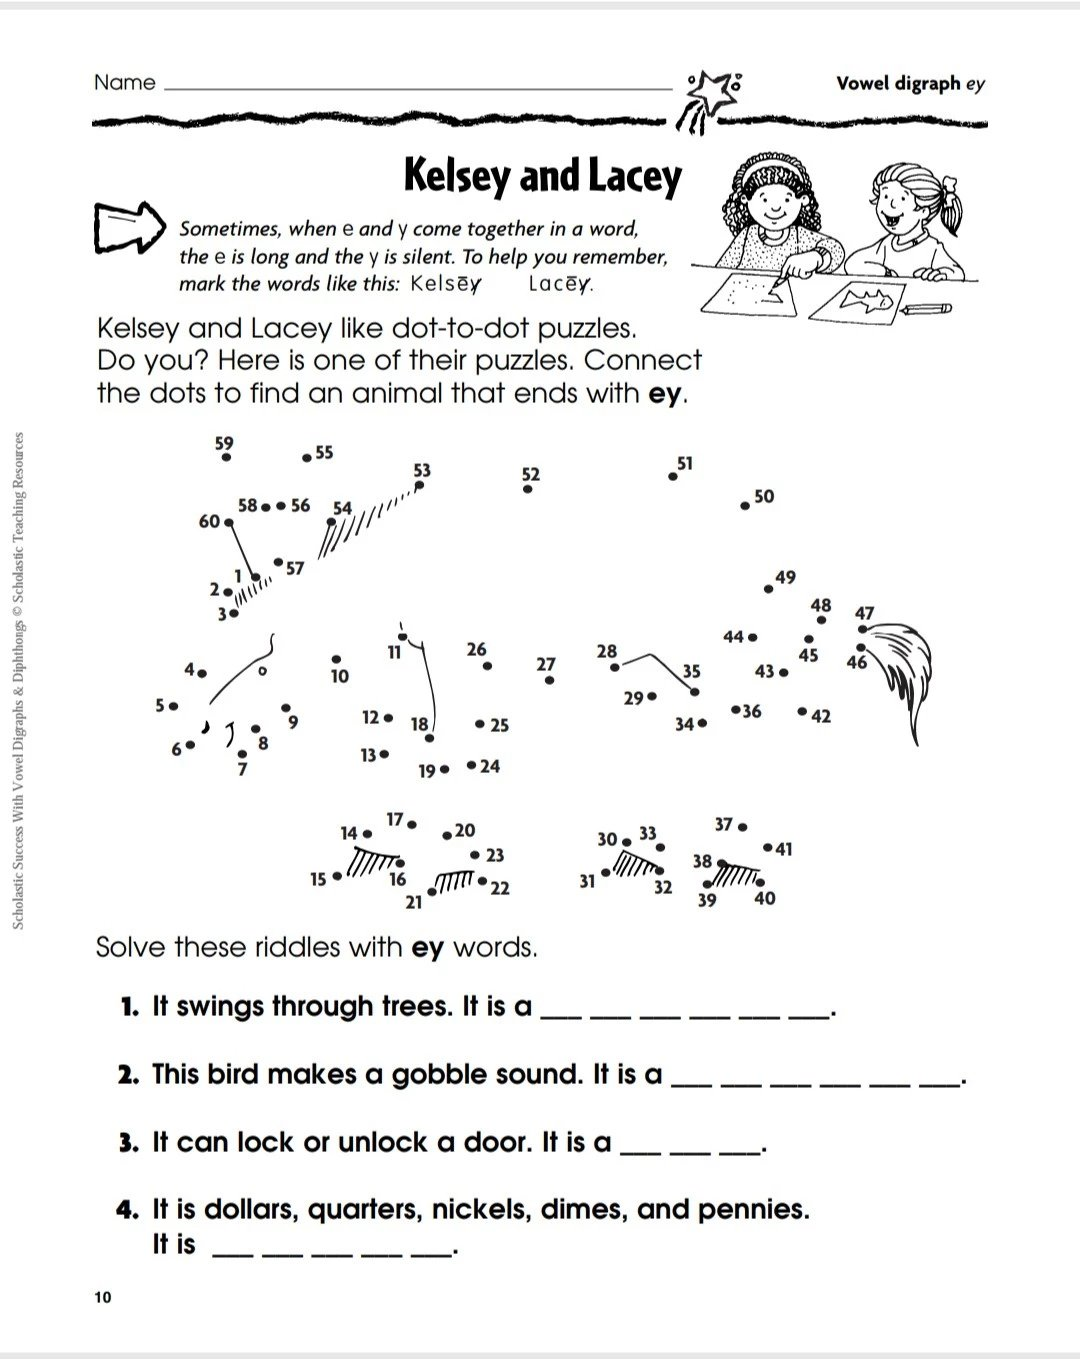 Scholastic 9 Success With Vowel Digraphs And Diphthongs K